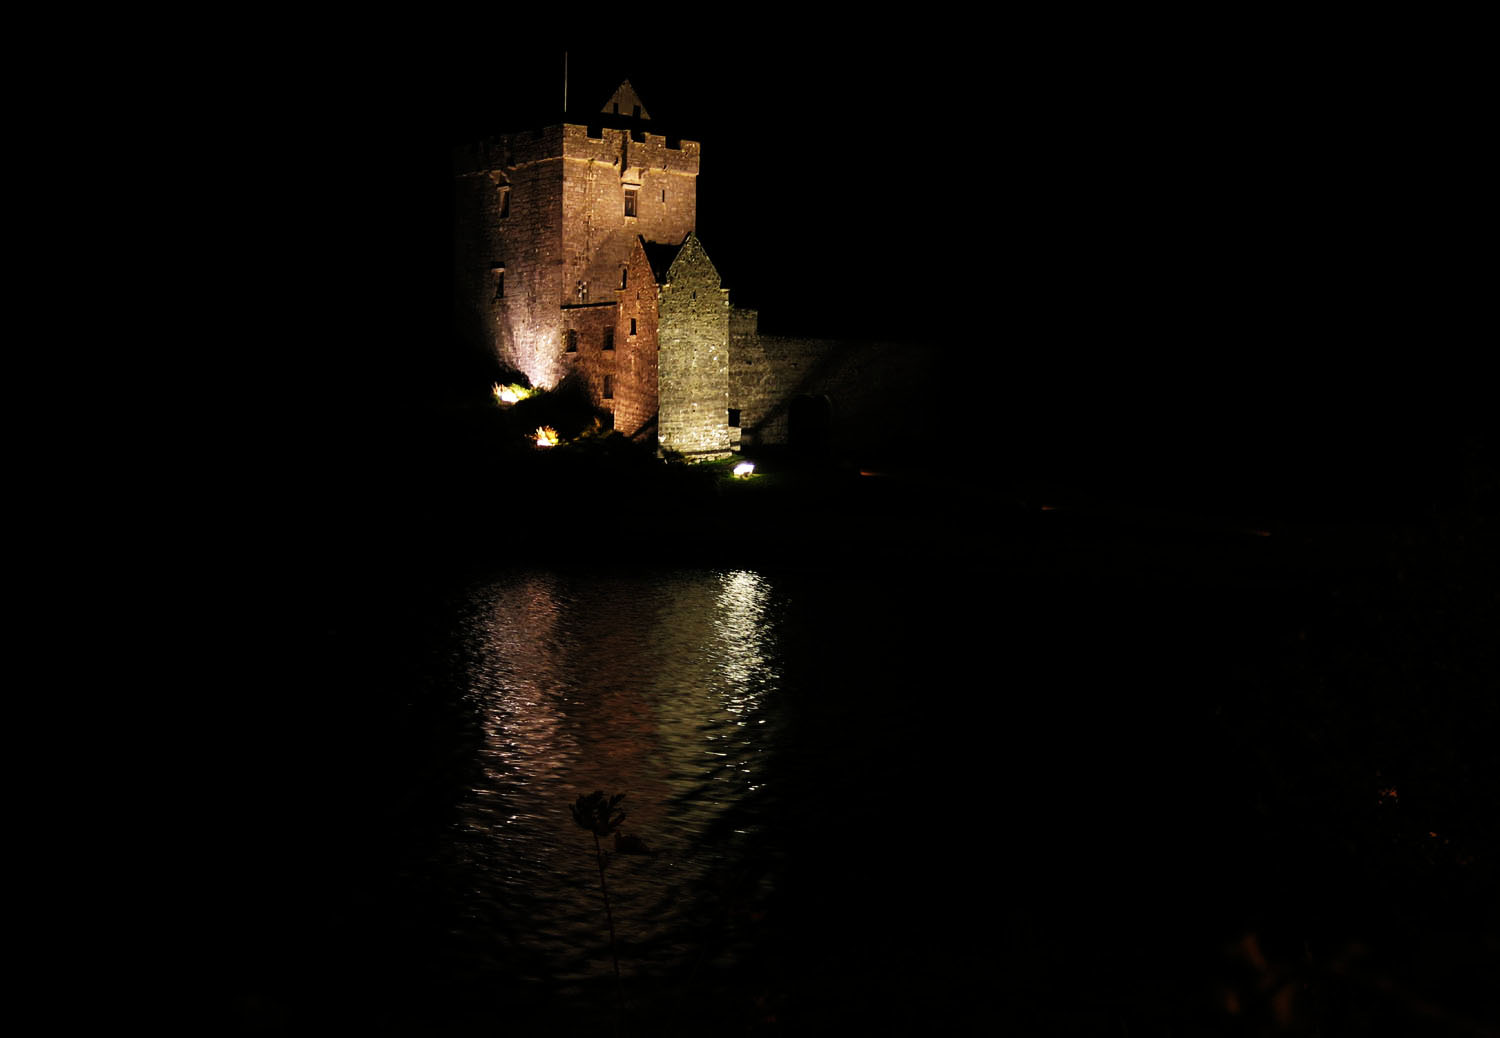 Ireland-Sights-And-Scenery-Dunguaire-Castle-Night